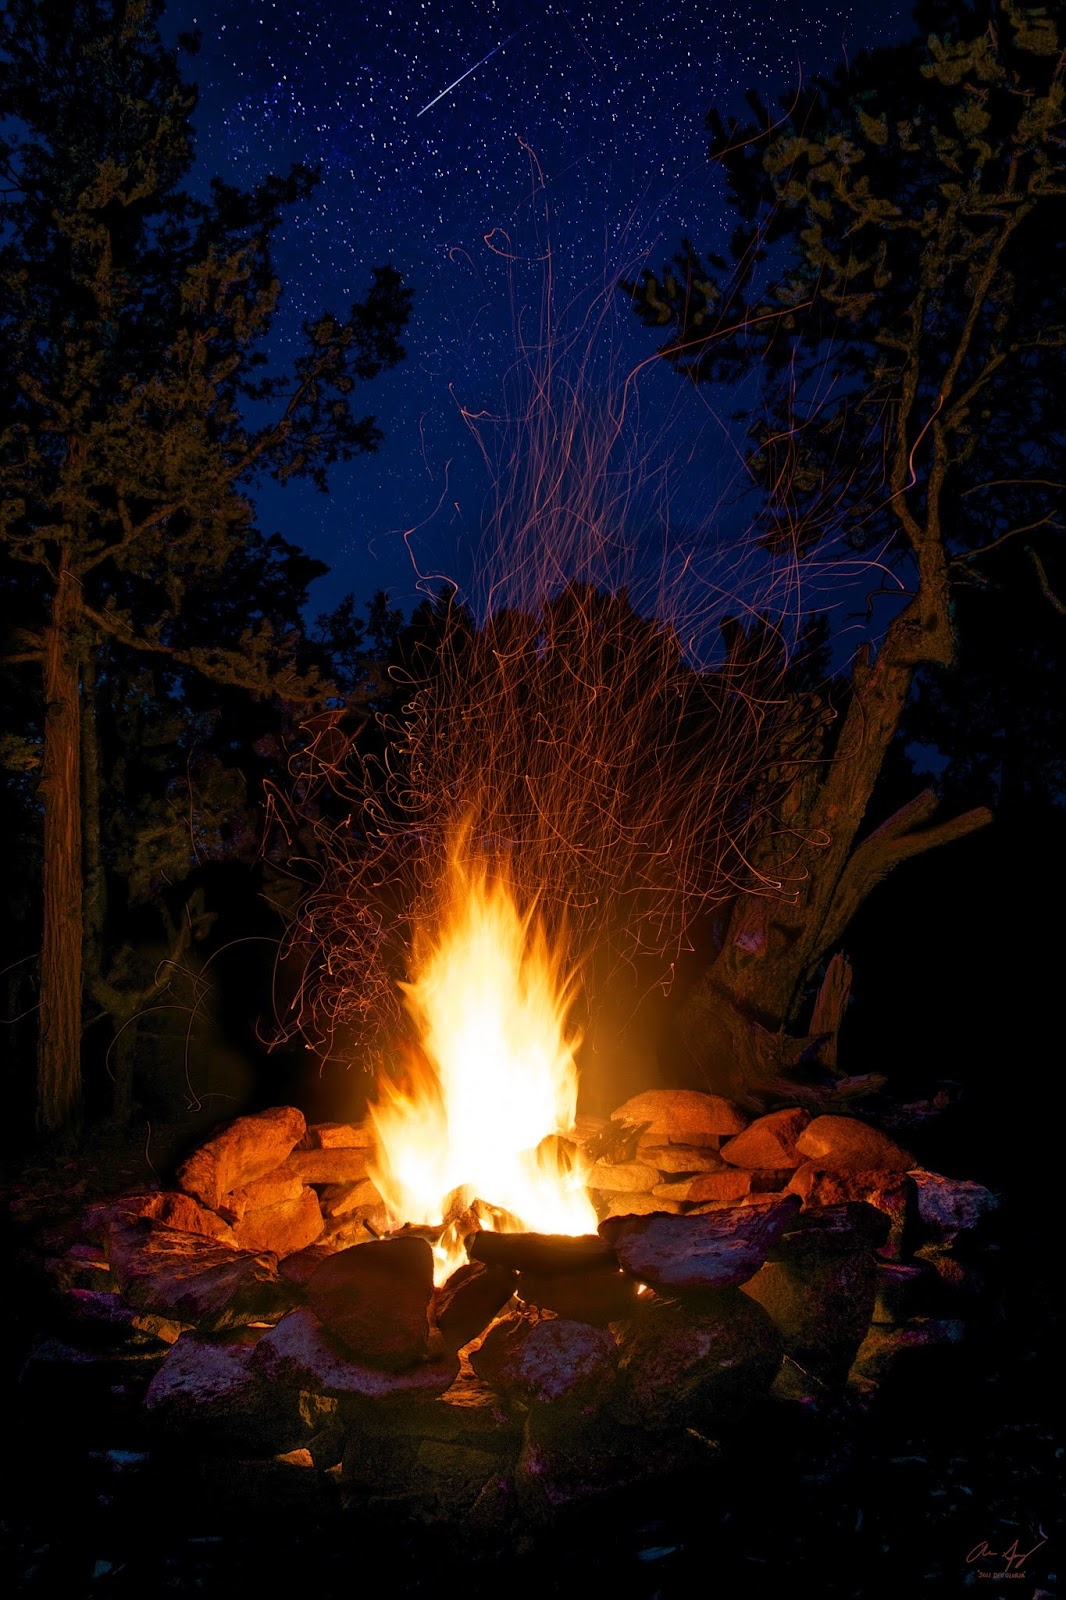 campfire with flames sparks and shooting star camping forest fire